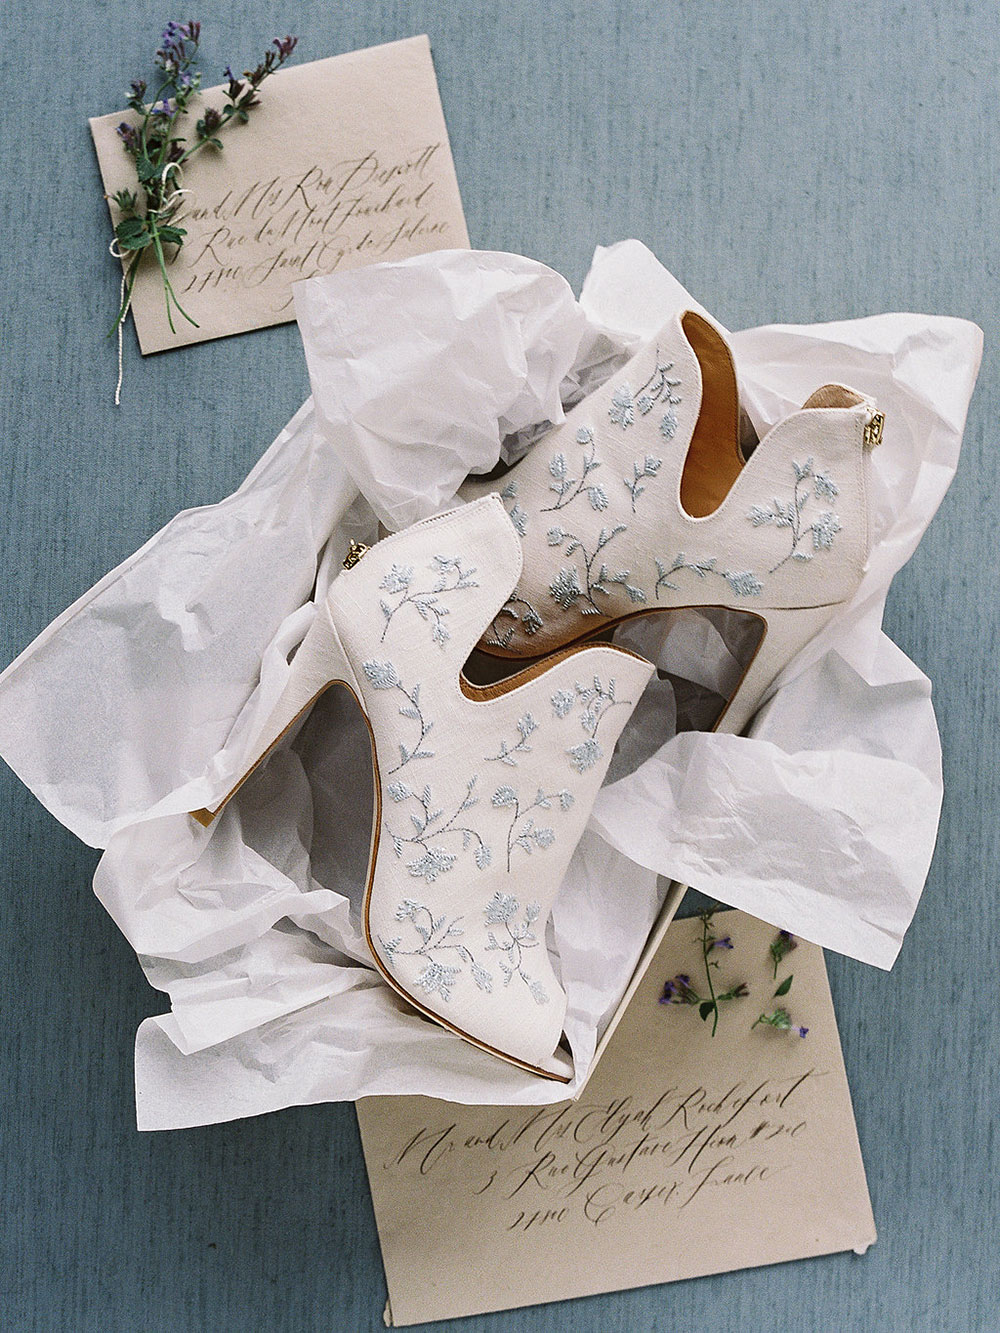 9a976b8f1f4de2 ... is inspired by the euphoric nature of the shoe collection itself. It is  intended to serve an edgy and fashion-forward interpretation on a bridal  look.